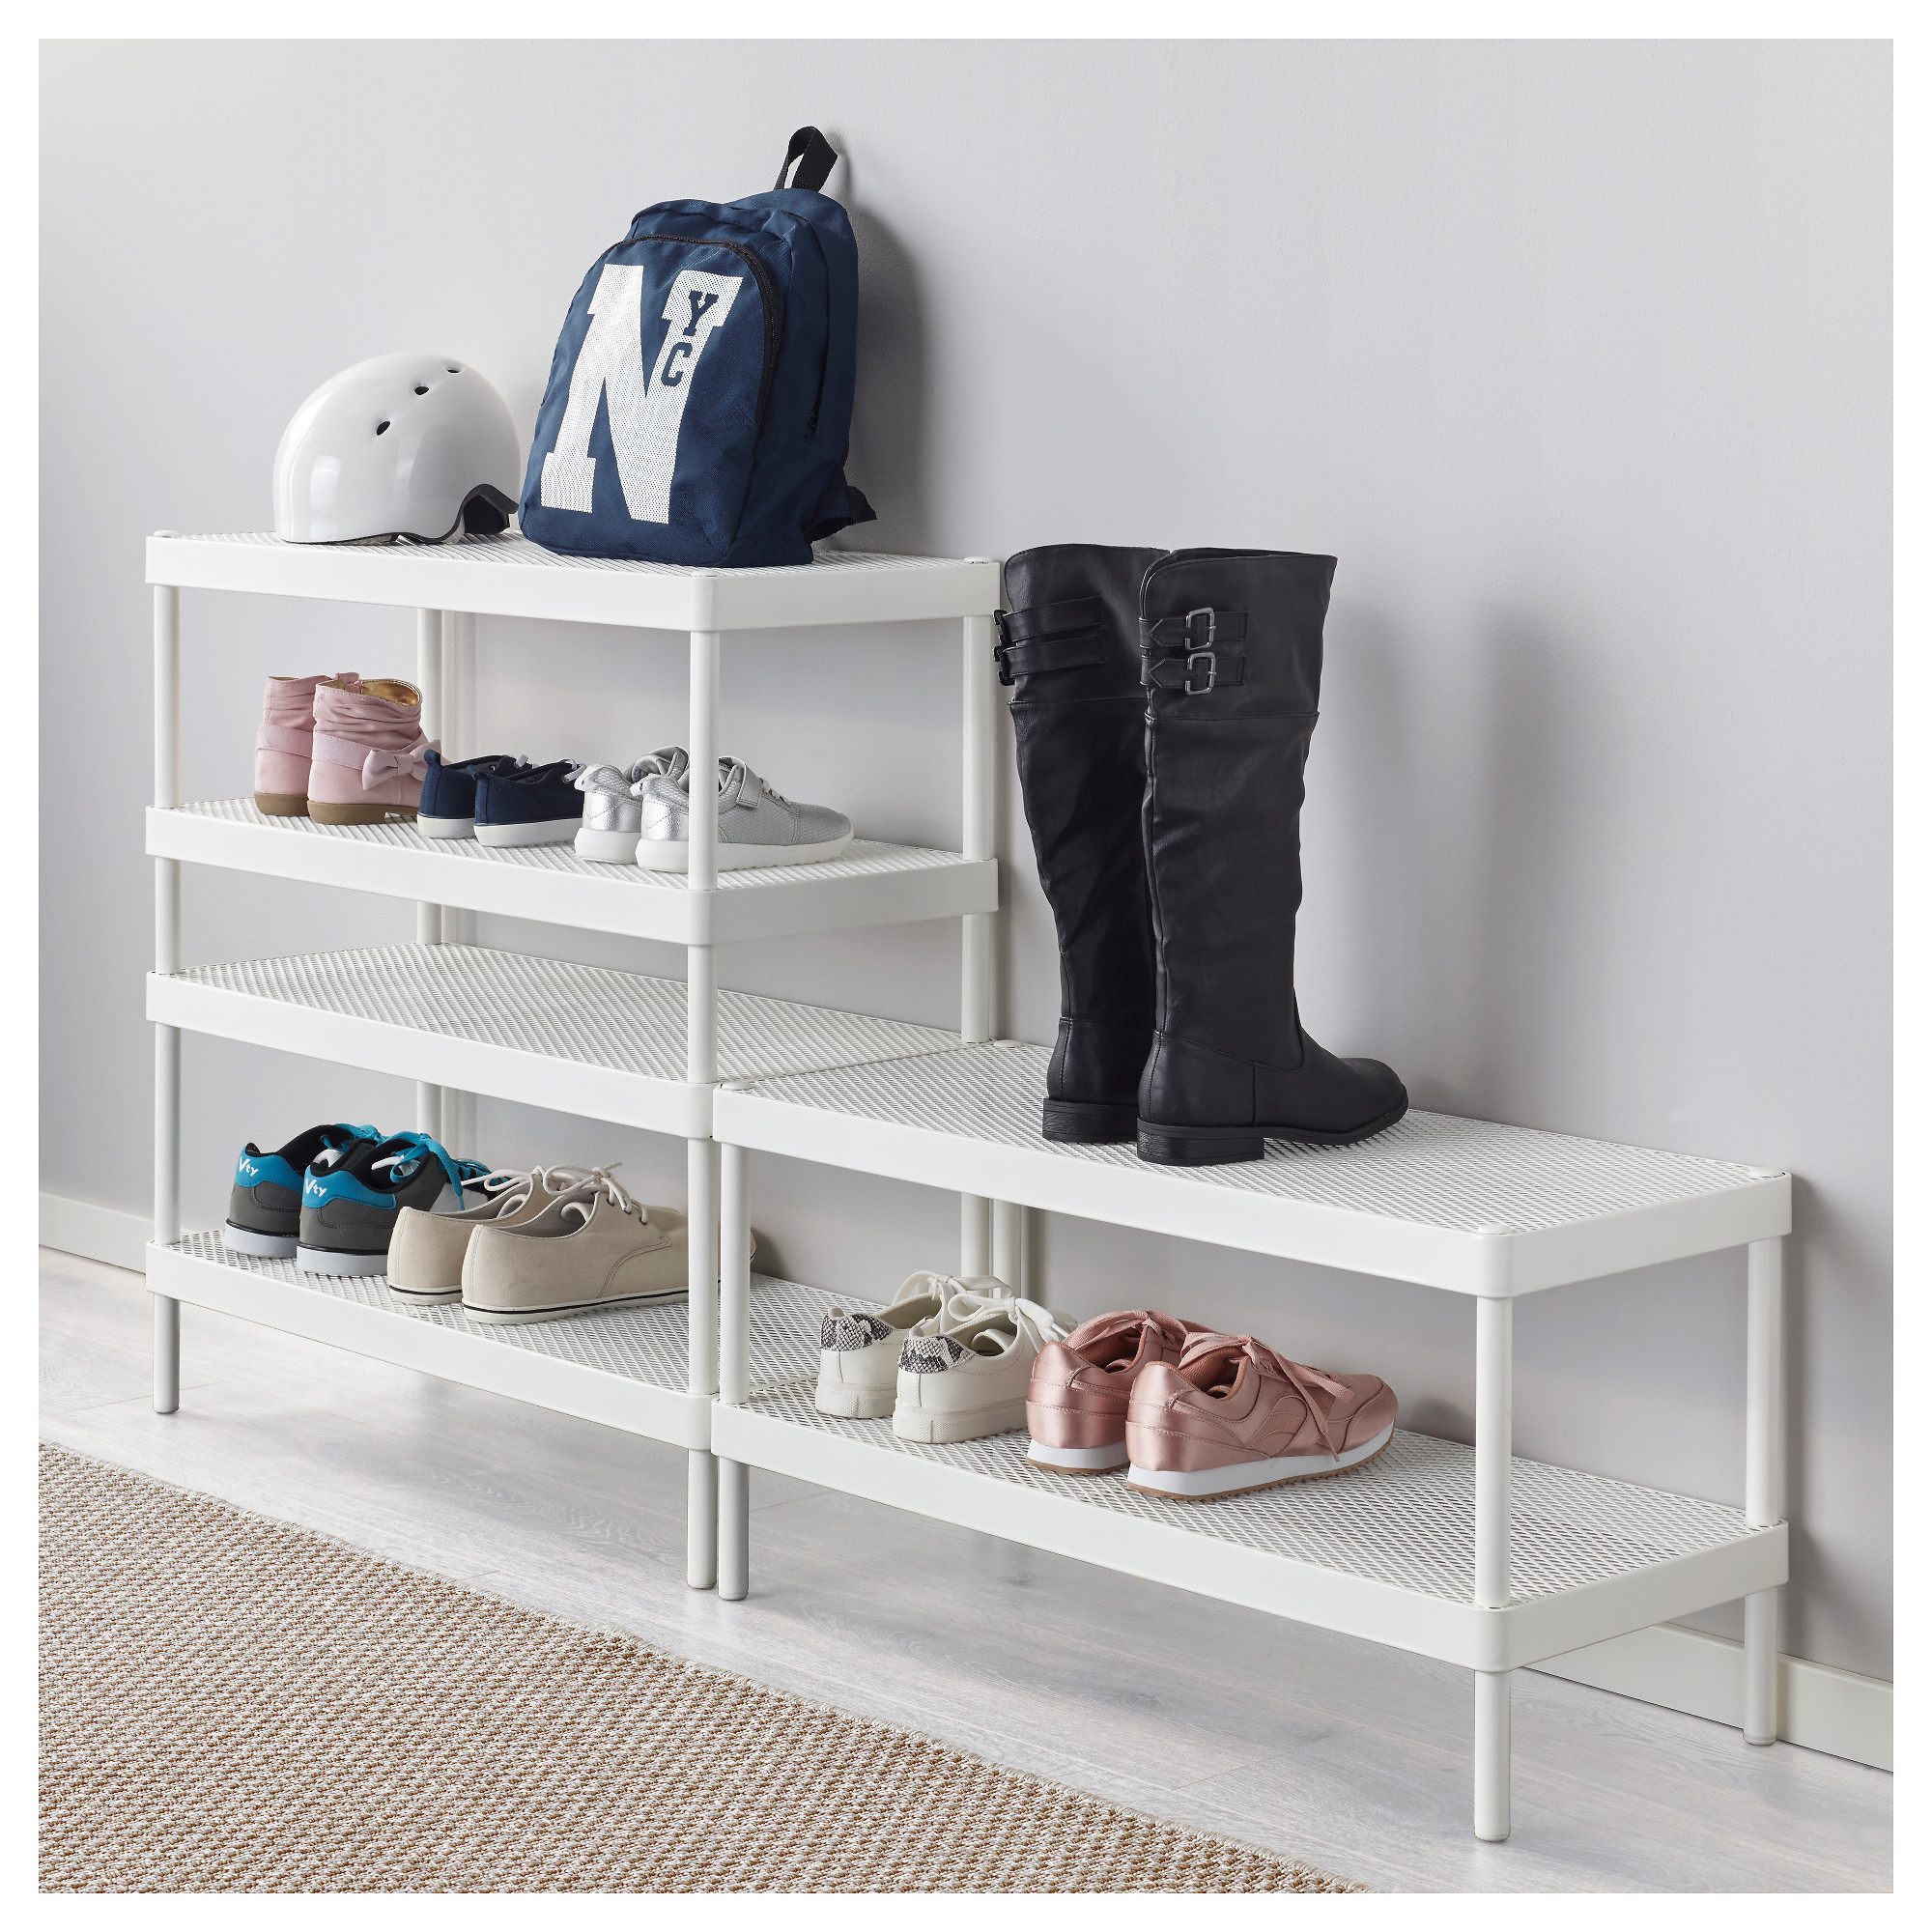 mackapr shoe rack ikea - Shoe Rack Ikea